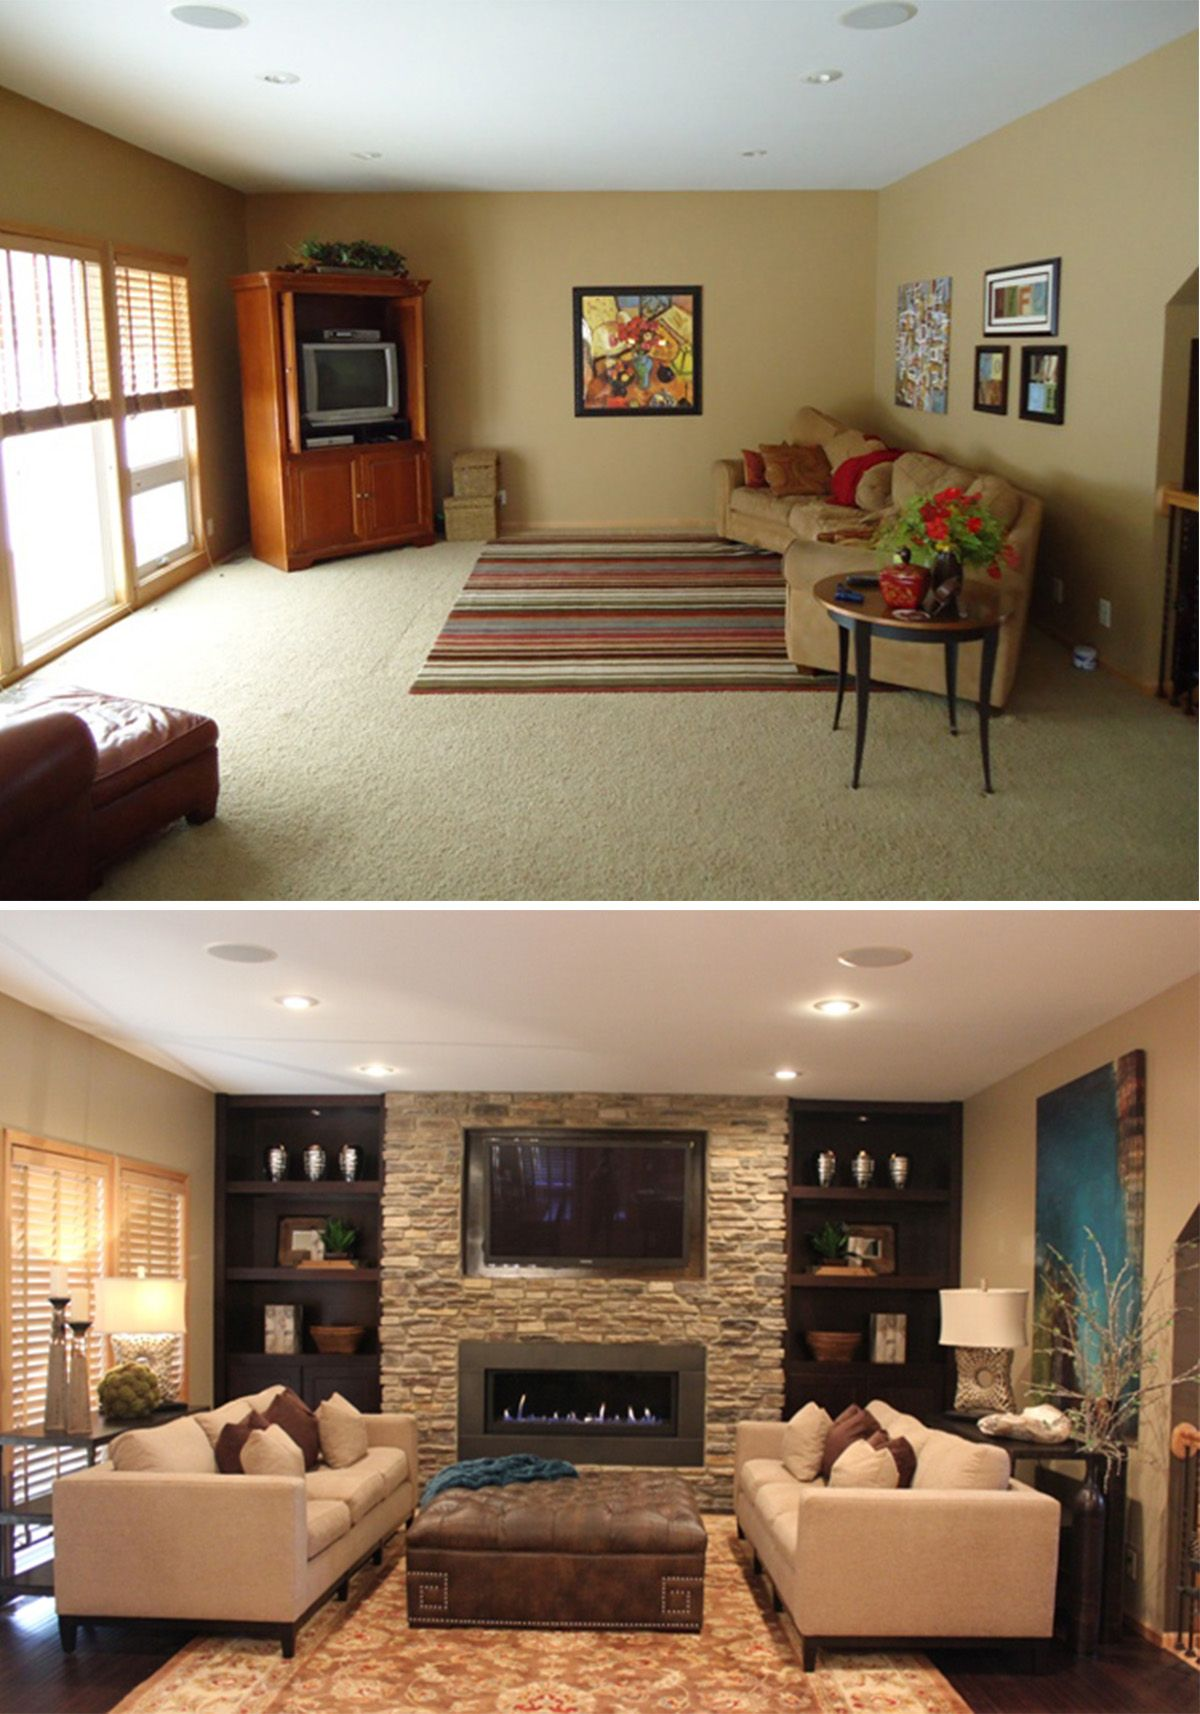 Best Interior Design Before And After Michele Hybner Omaha 400 x 300